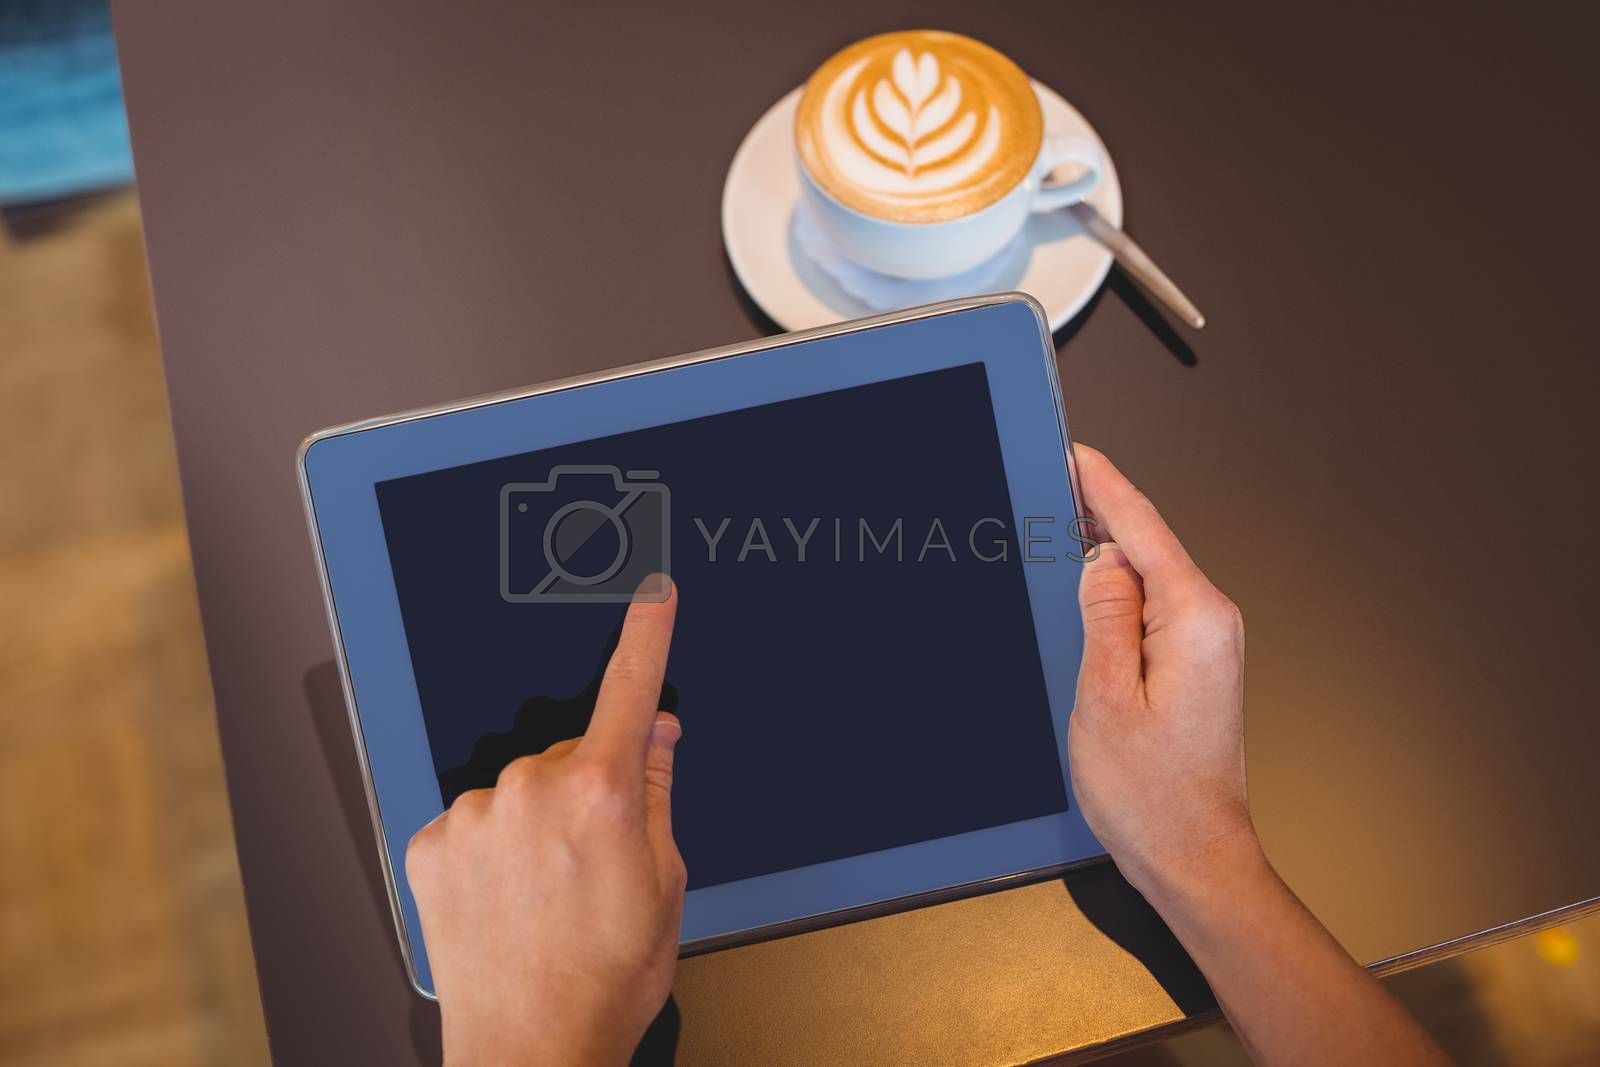 Royalty free image of Close-up of digital tablet and coffee on table by Wavebreakmedia